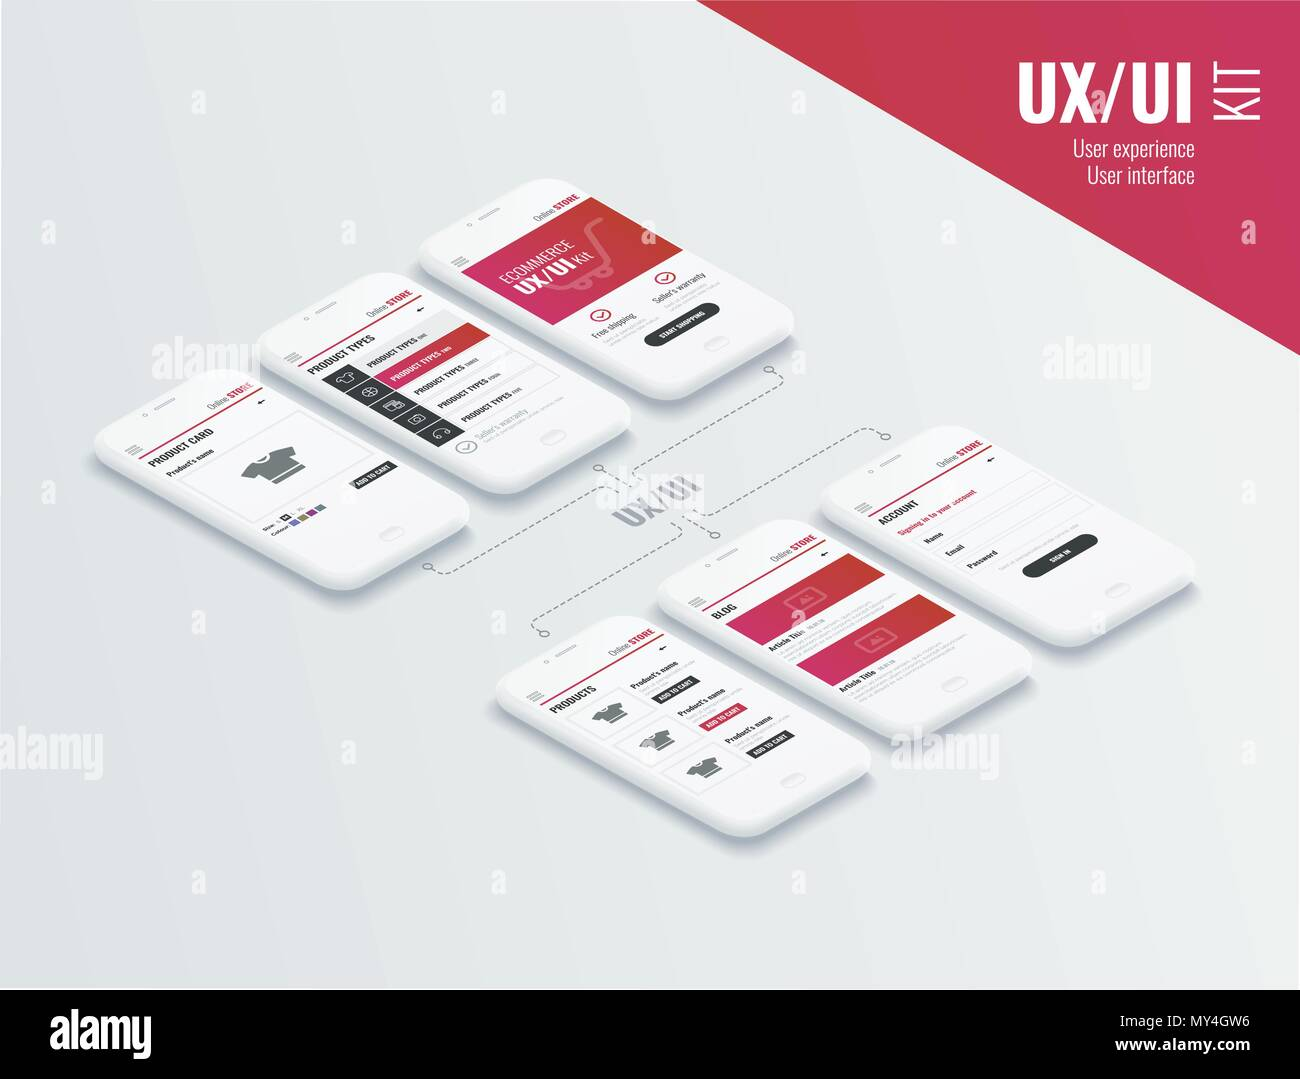 A conceptual mobile phones with a mobile app pagese. User experience, user interface in e-commerce. Website wireframe for mobile apps. - Stock Image